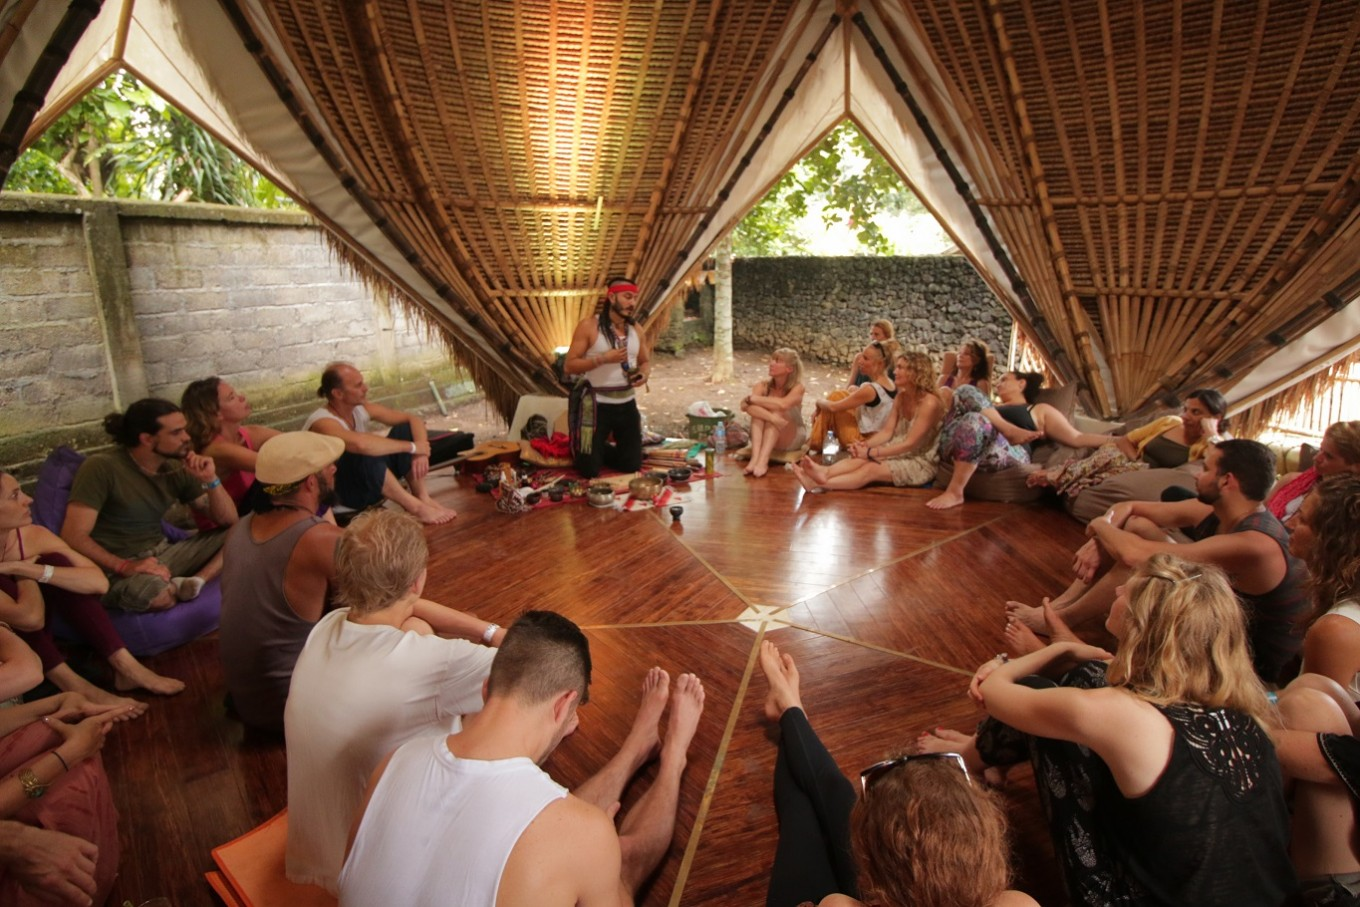 Ancient Futures Festival gives Bali food for thought